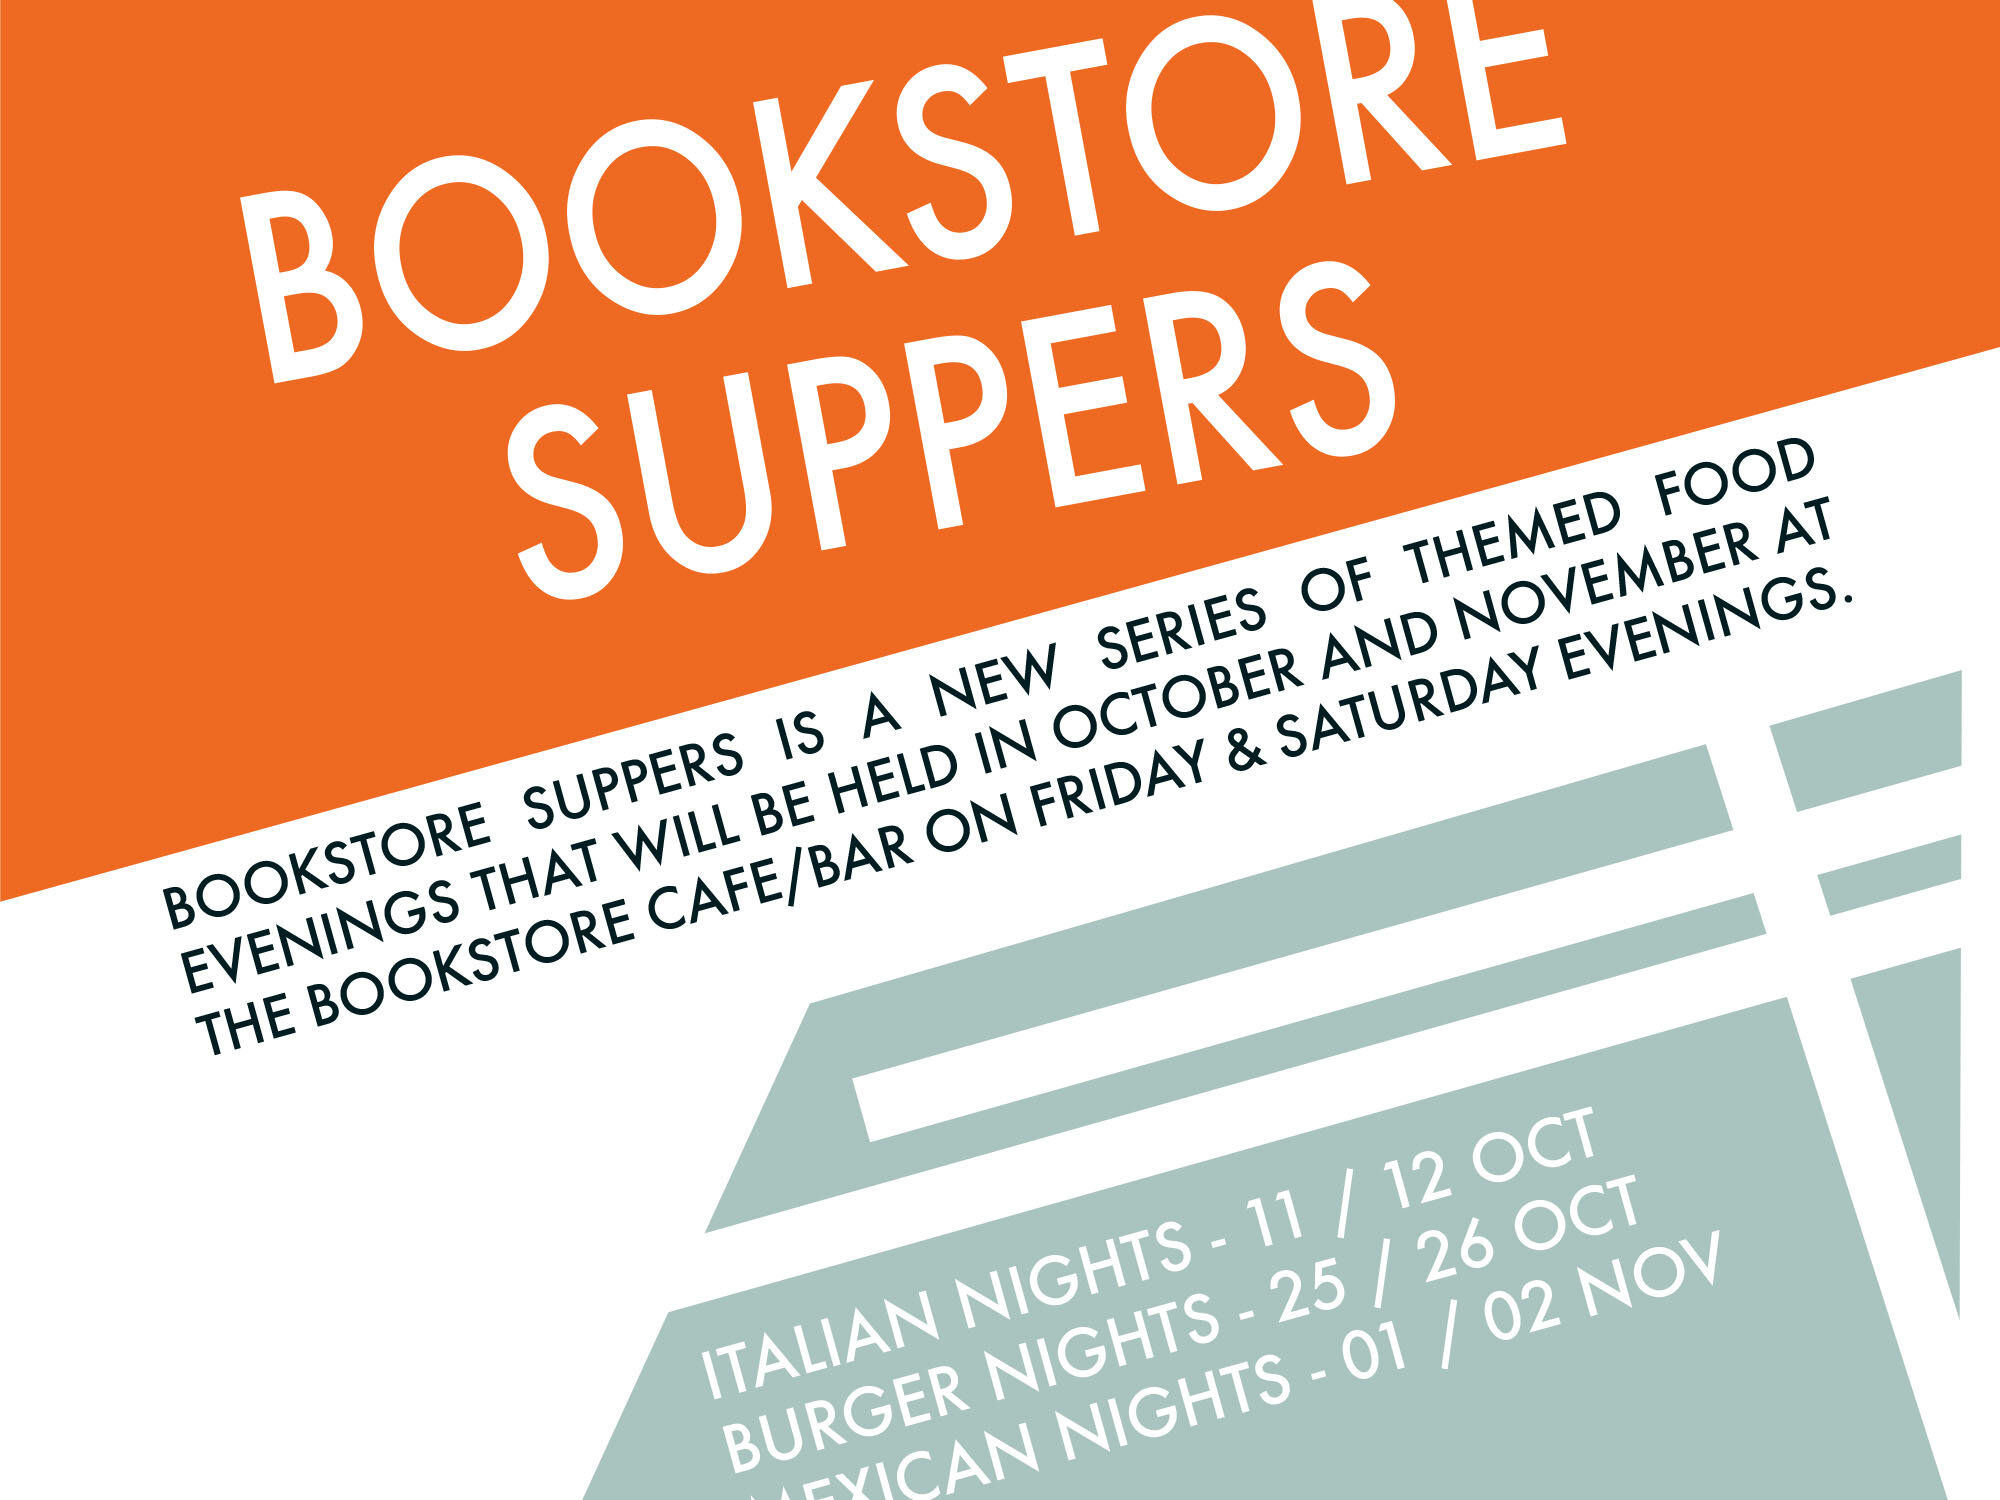 bookstore_suppers.jpg